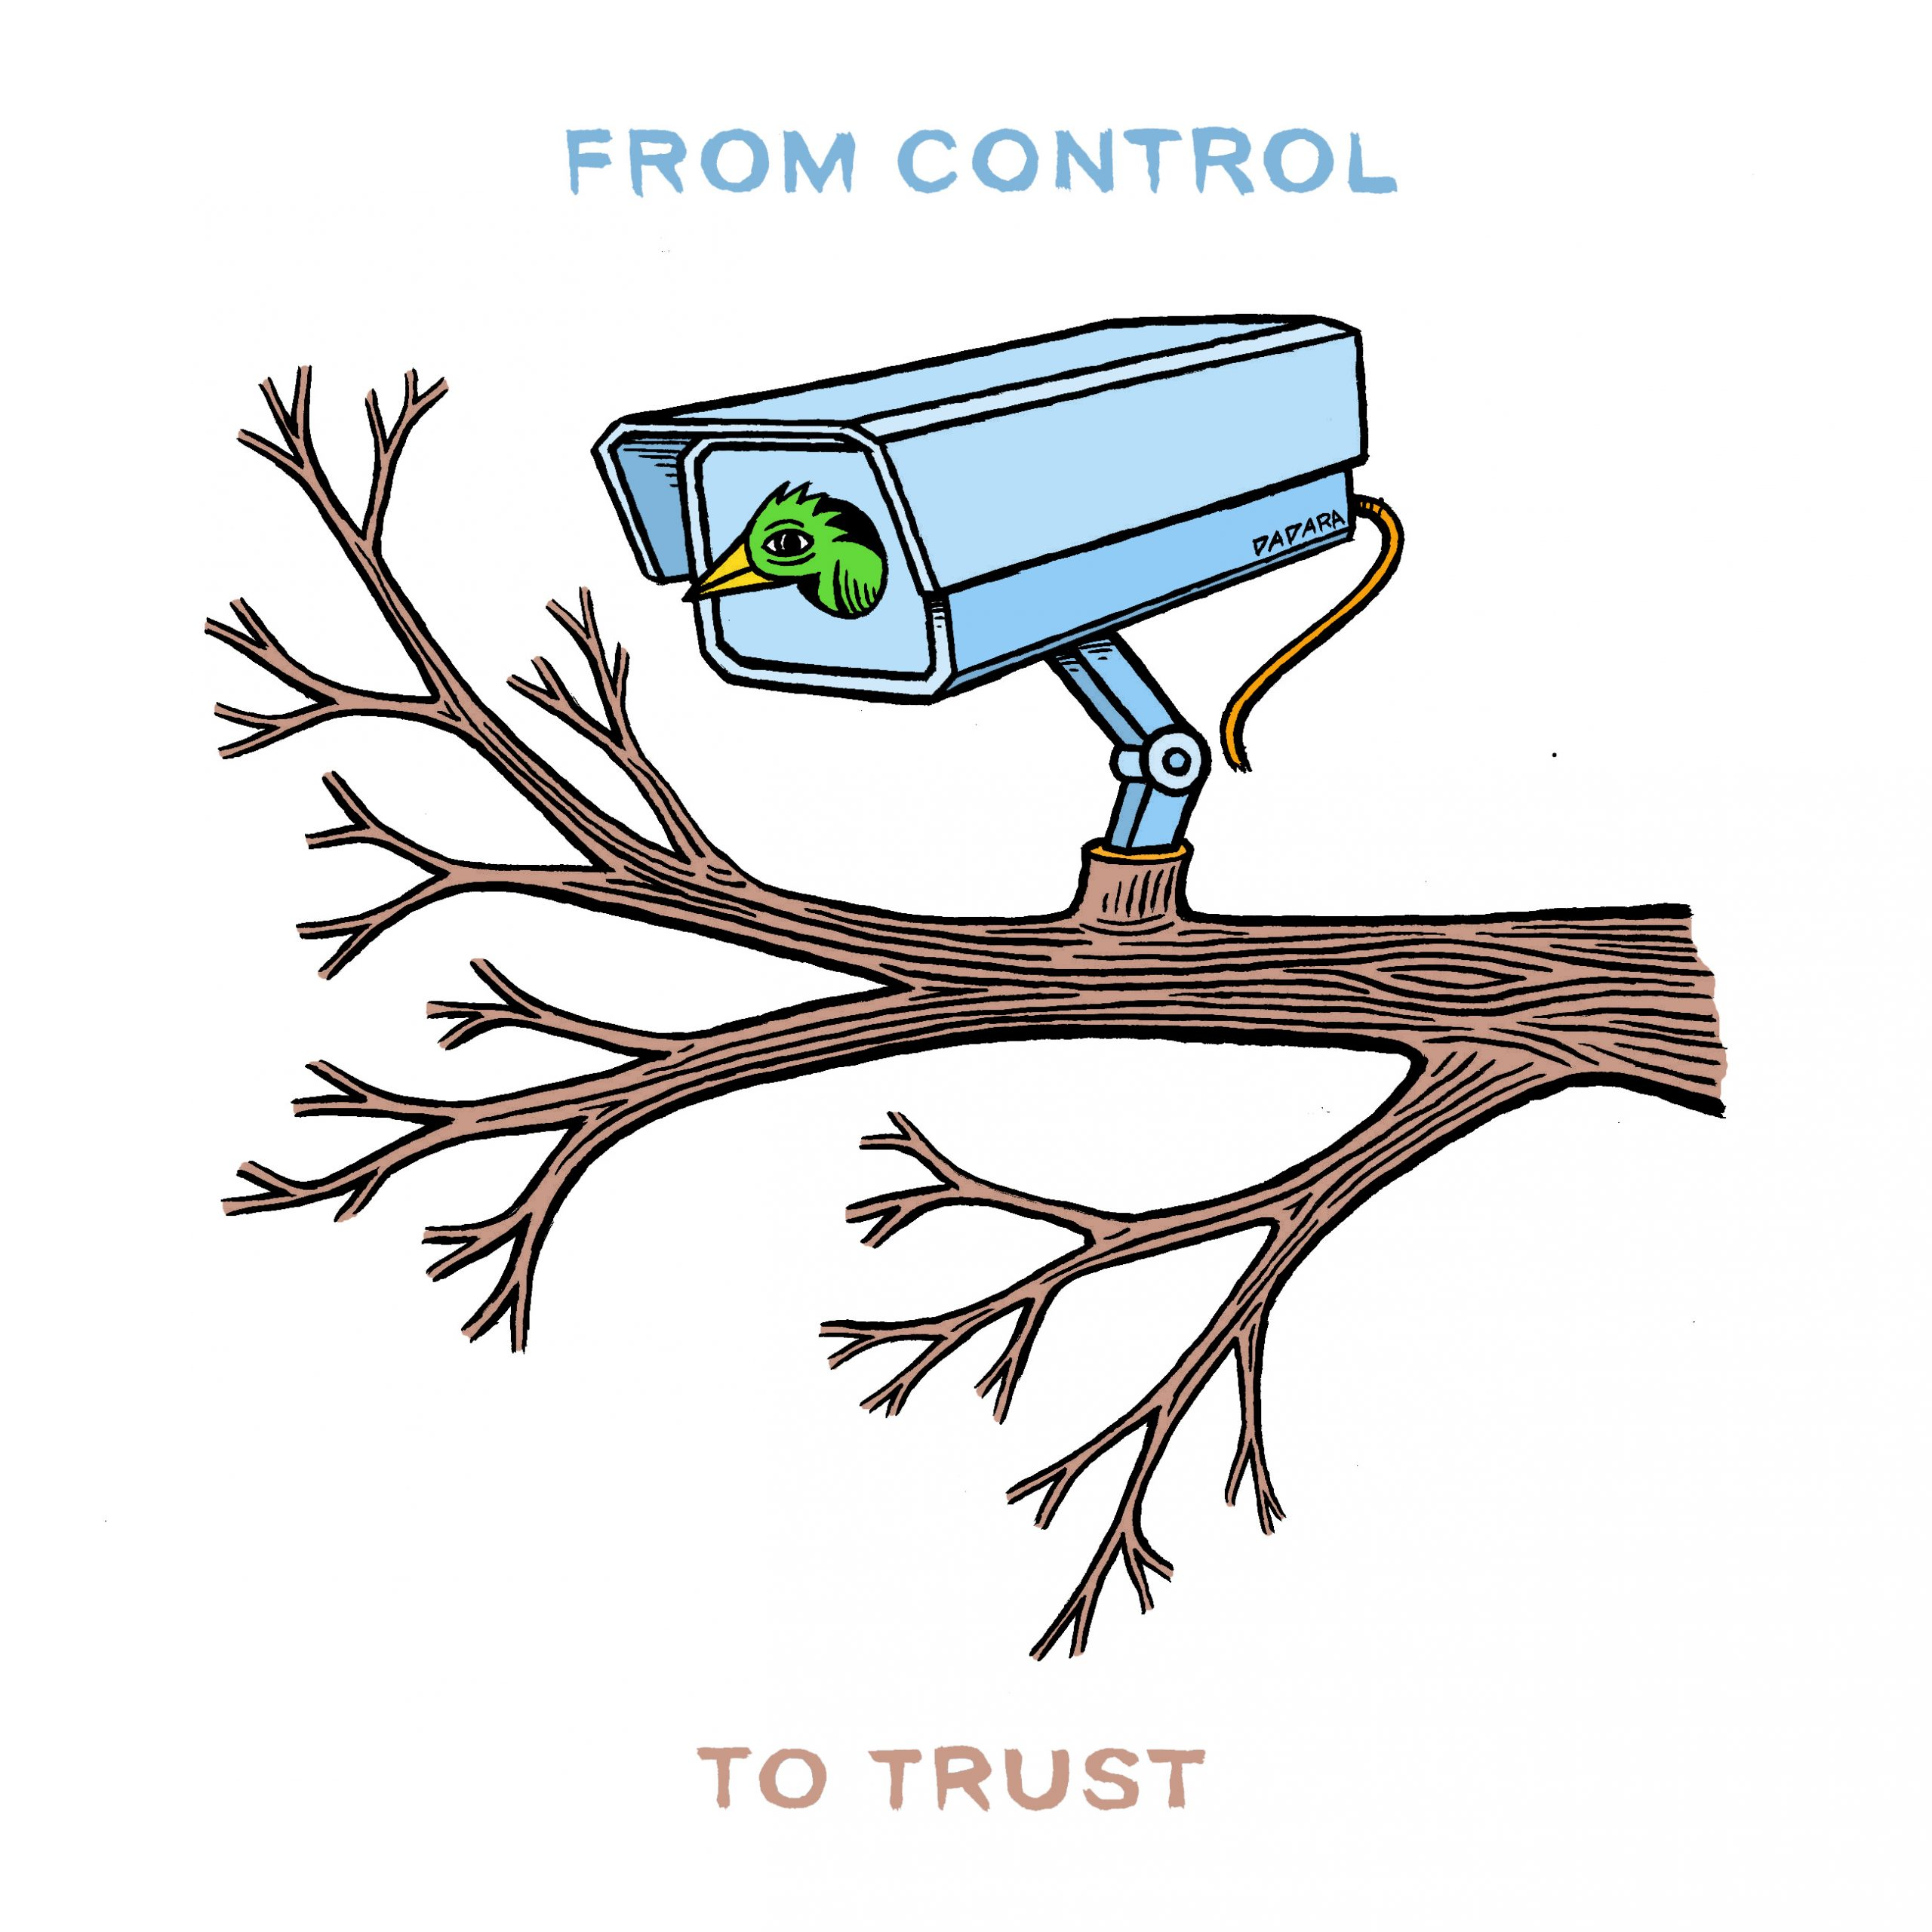 An illustration of a part of a tree with a CCTV camera without the ocular instead of one of the branches. A green starling is sitting inside and peeking out . Text: From control to trust.